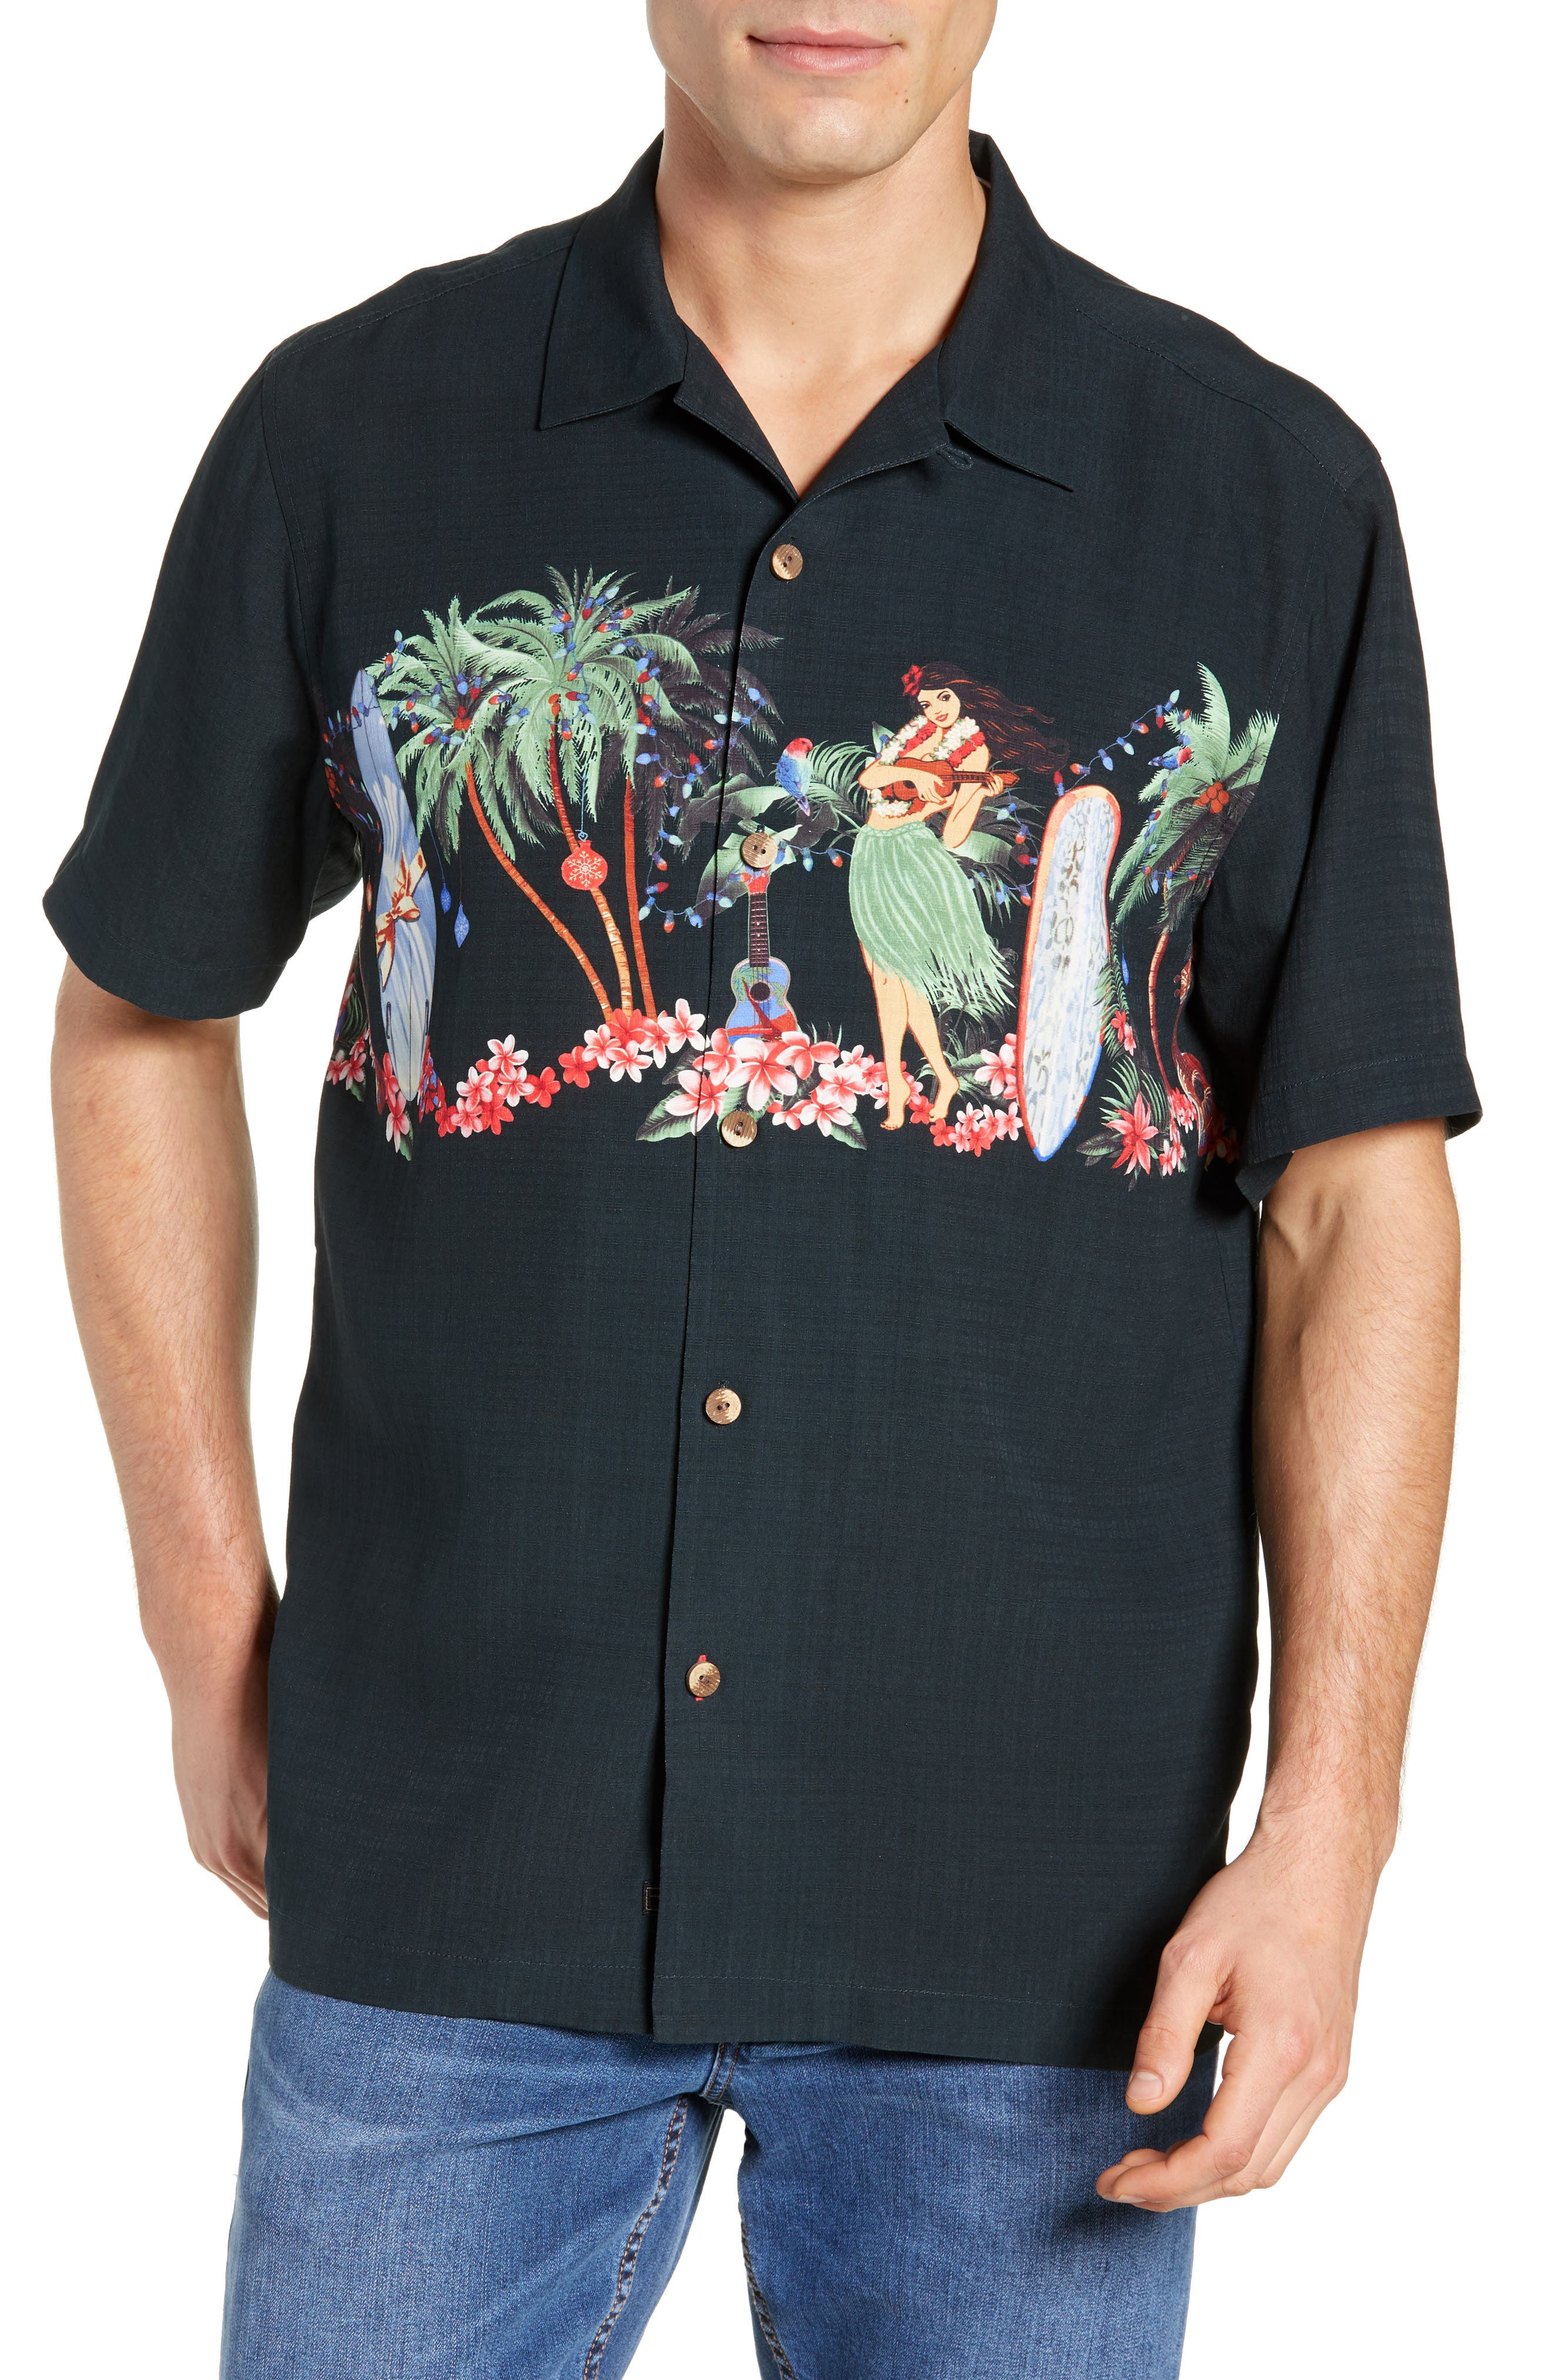 TOMMY BAHAMA Mele Kalikimaka Silk Camp Shirt, Main, color, 001